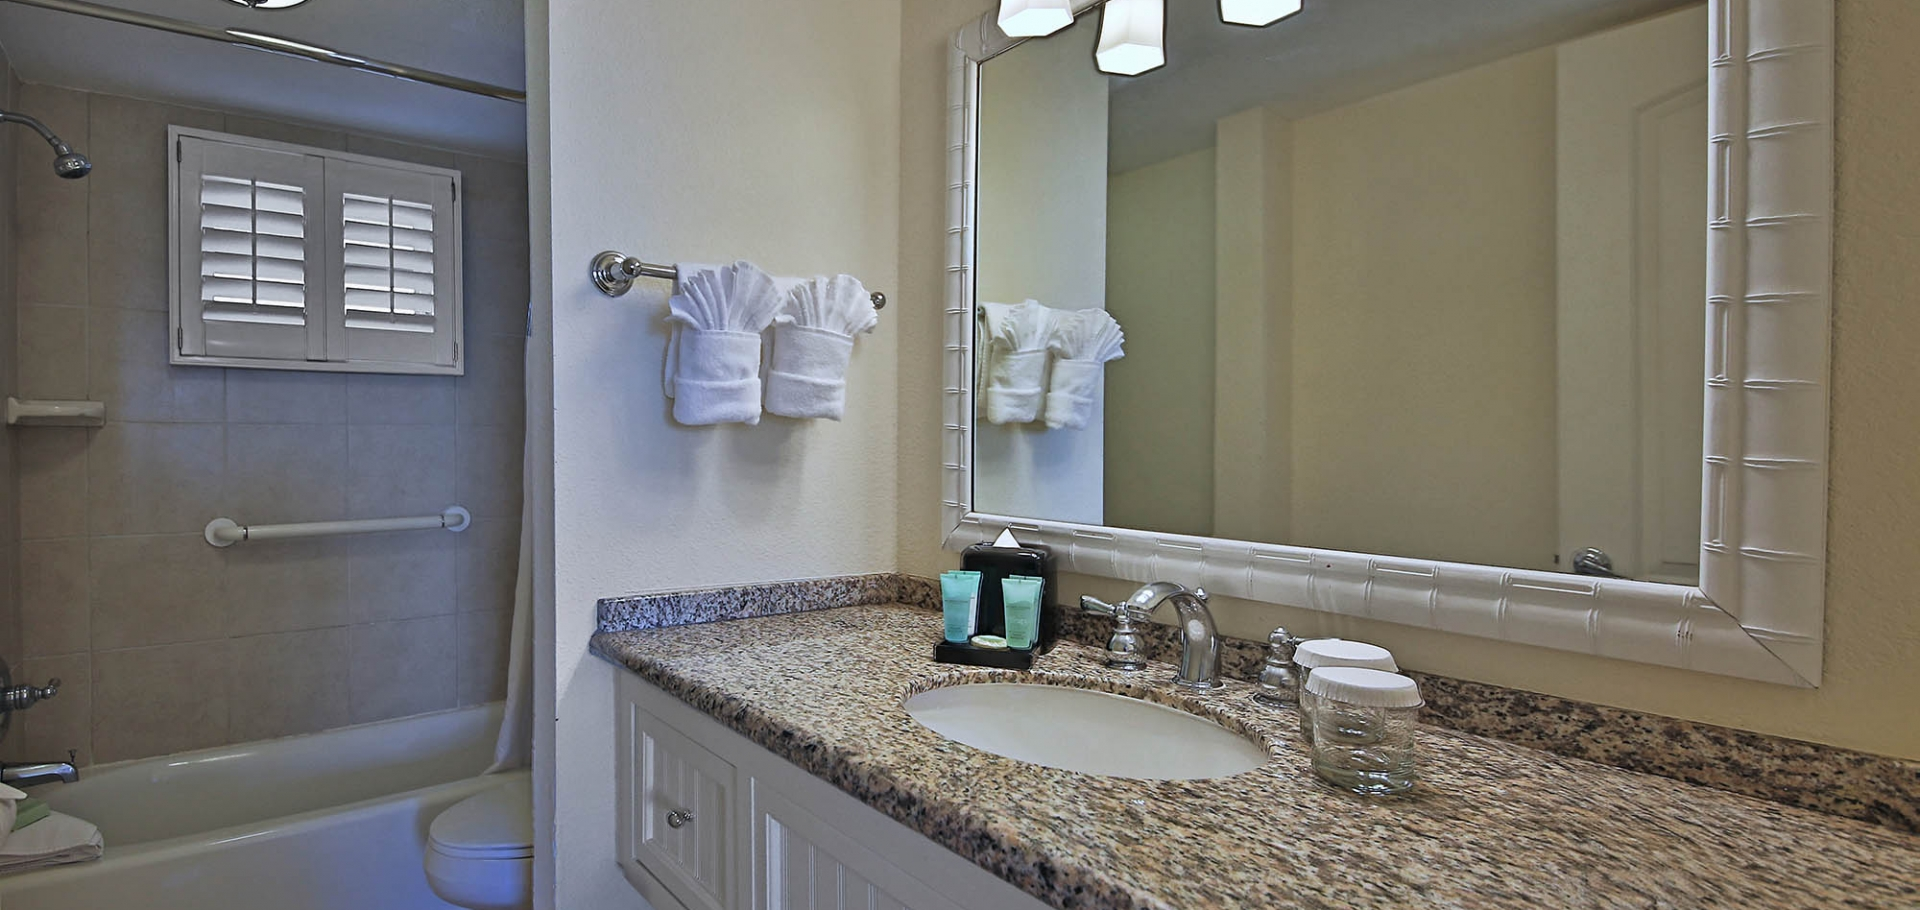 Sanibel Inn bathroom and amenities